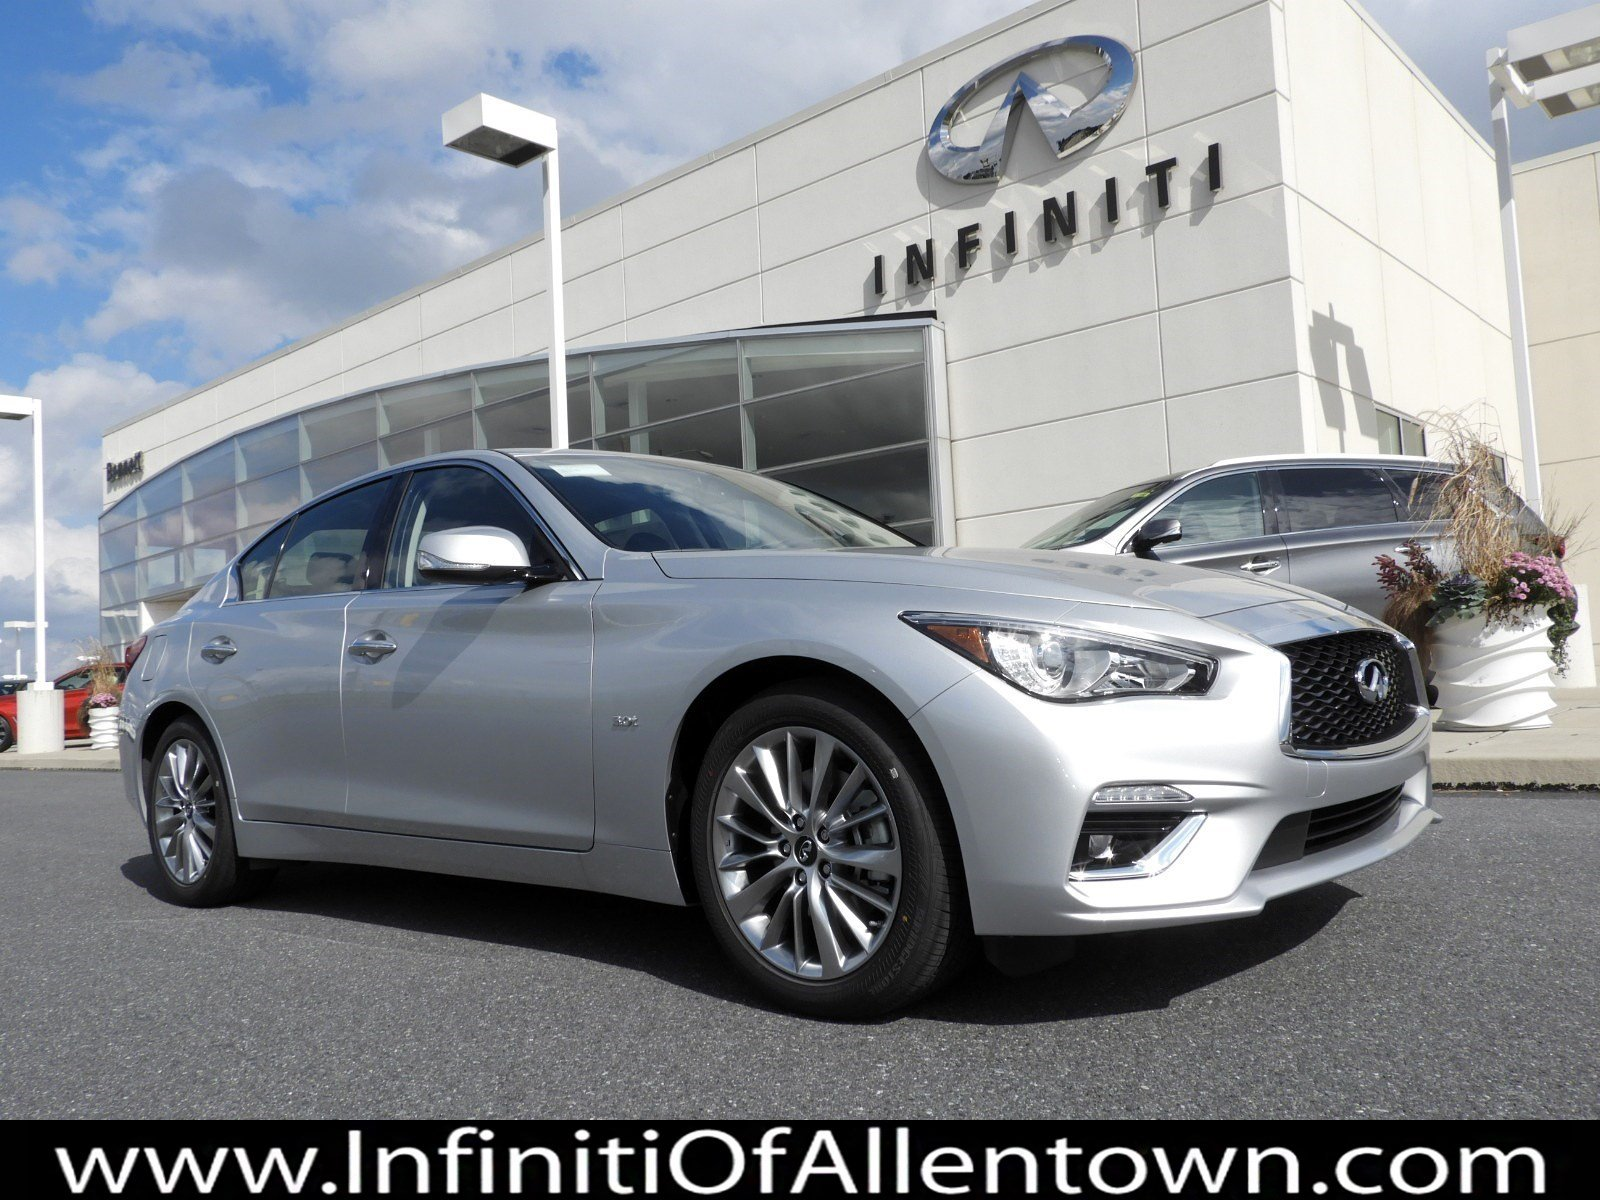 New 2019 INFINITI Q50 3 0t LUXE AWD With Navigation & AWD